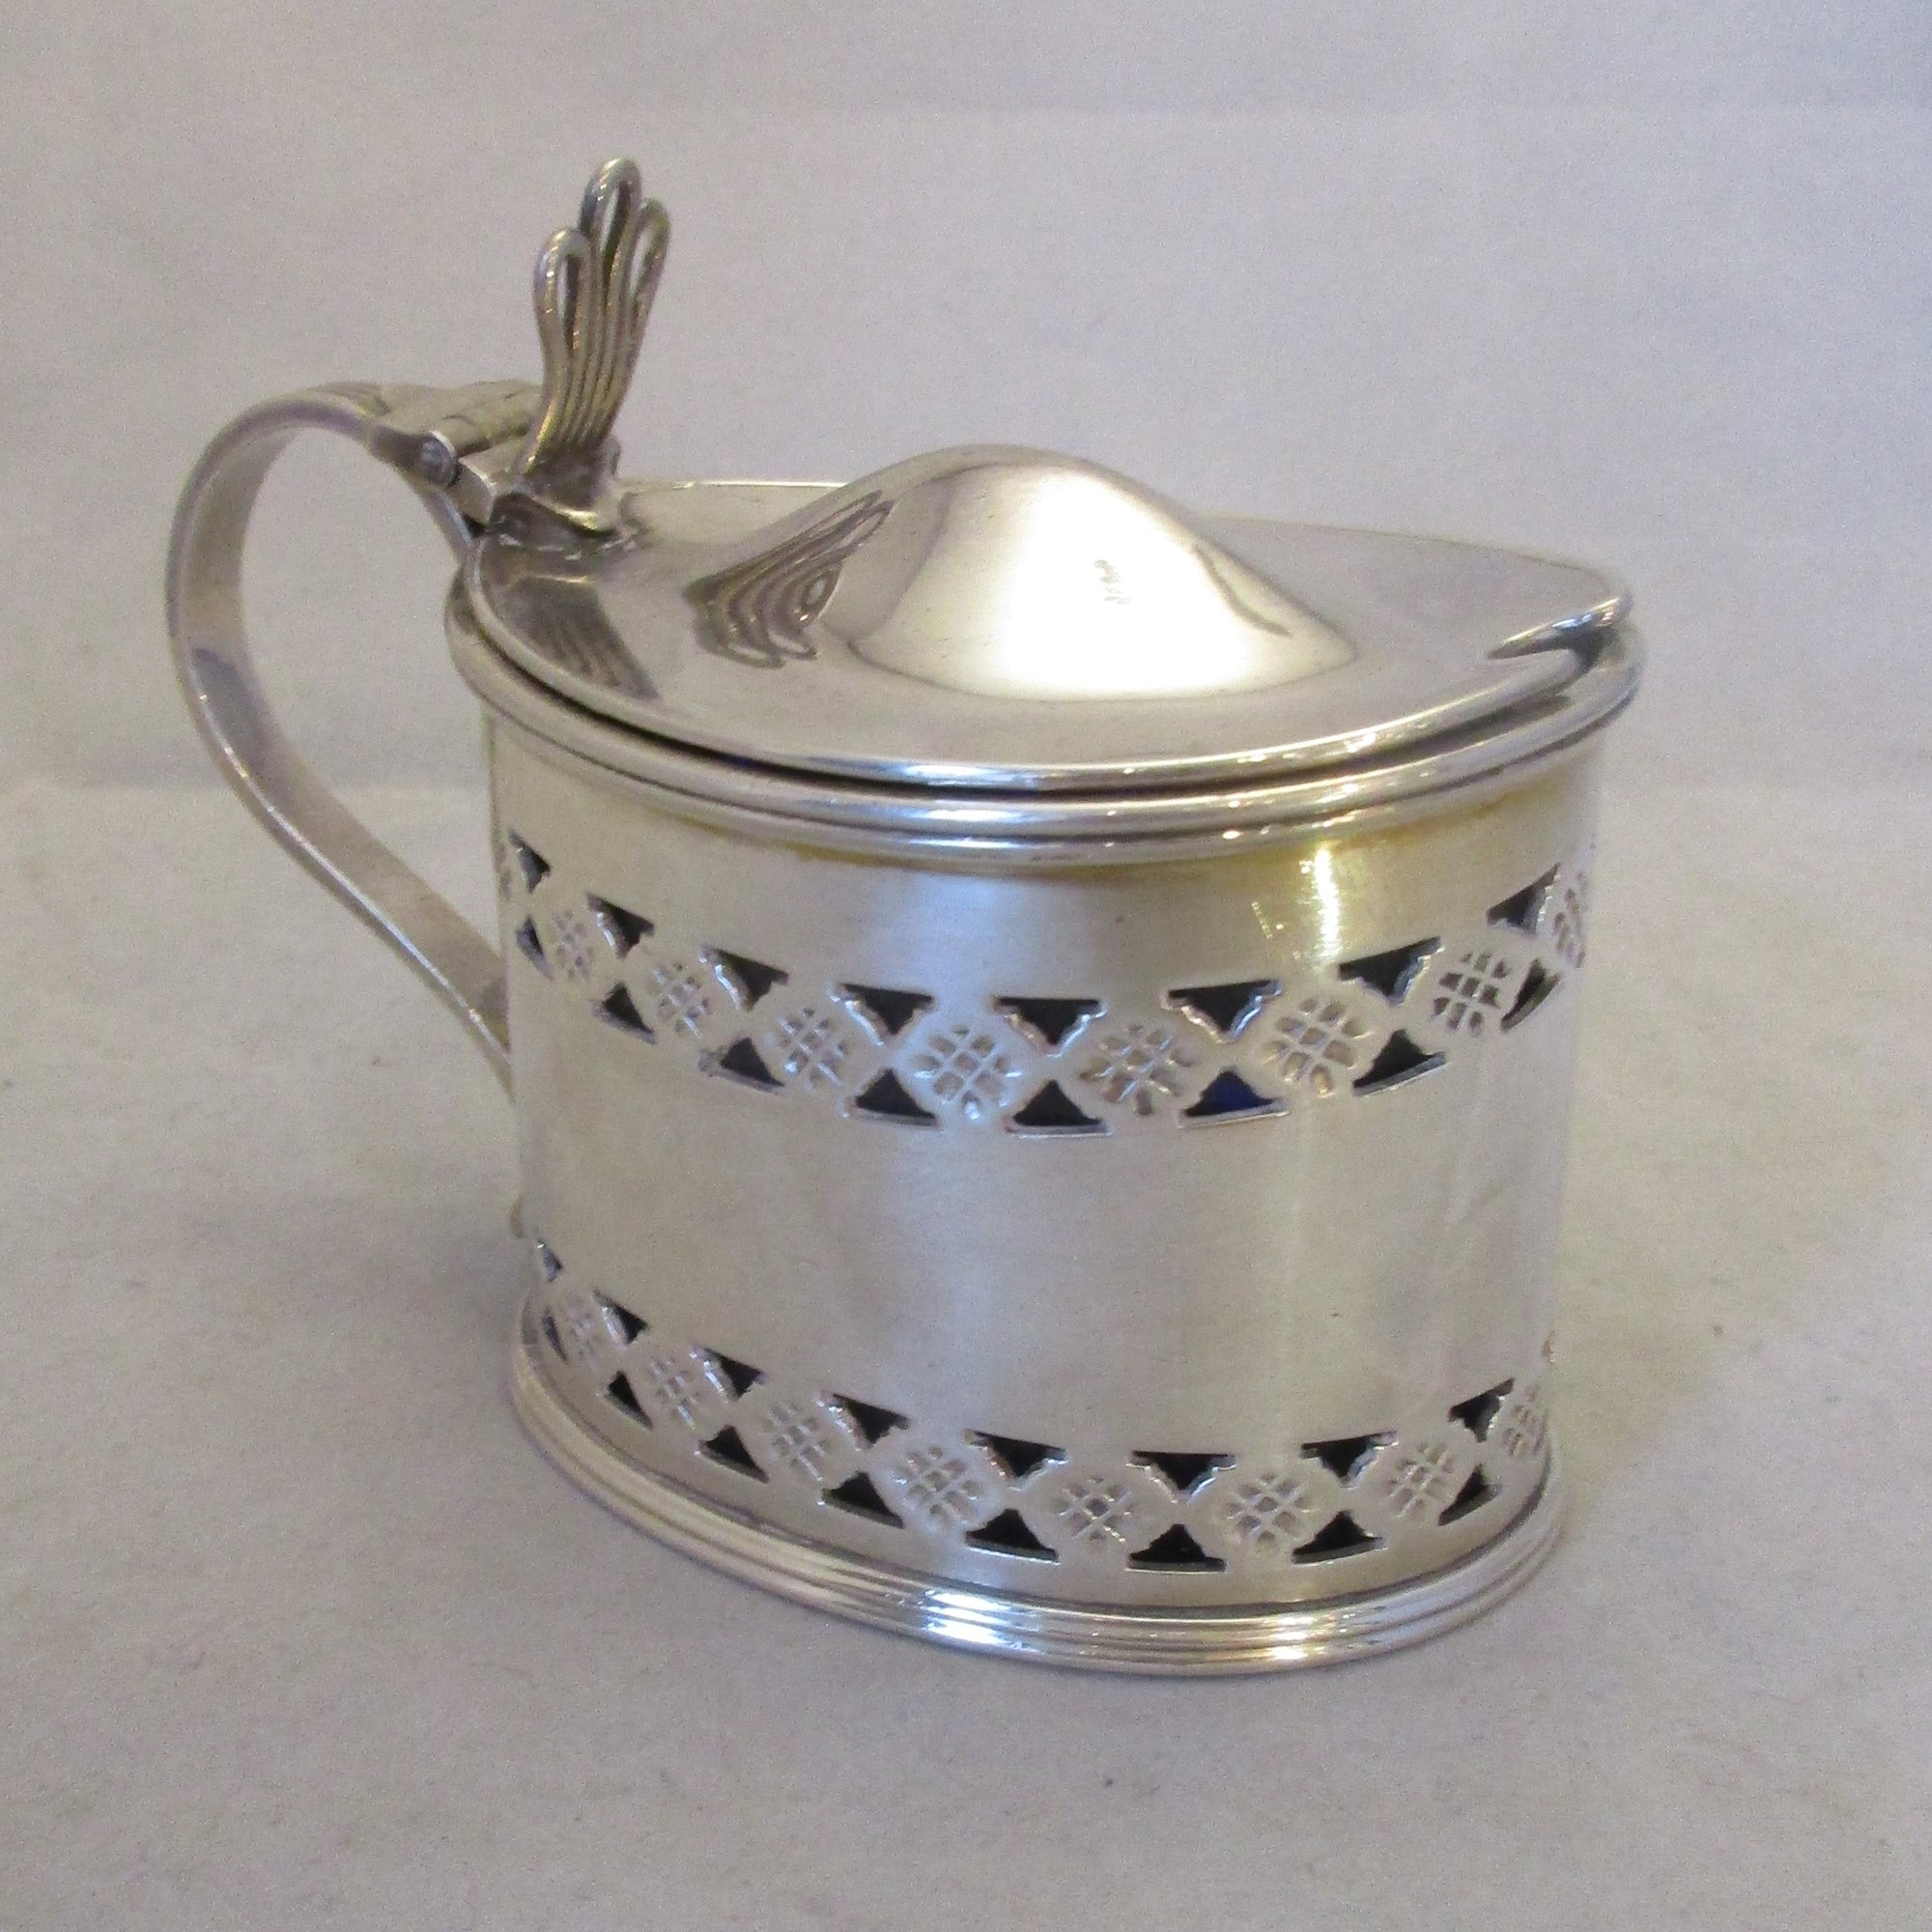 Silver Plated Jam Preserve Jar Antique c1900.